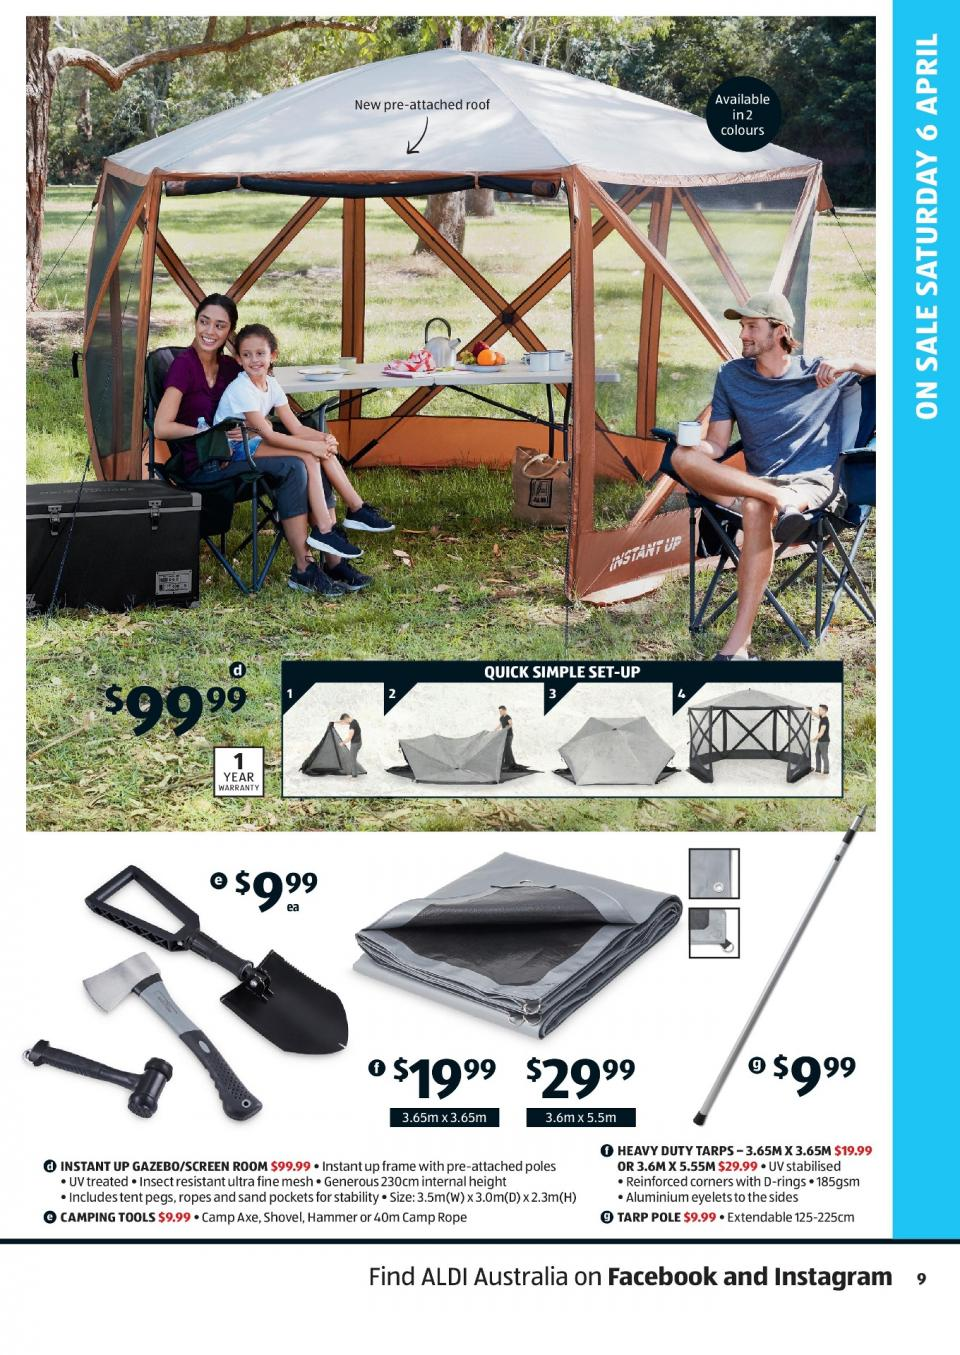 aldi catalogue special buys week 14 2019